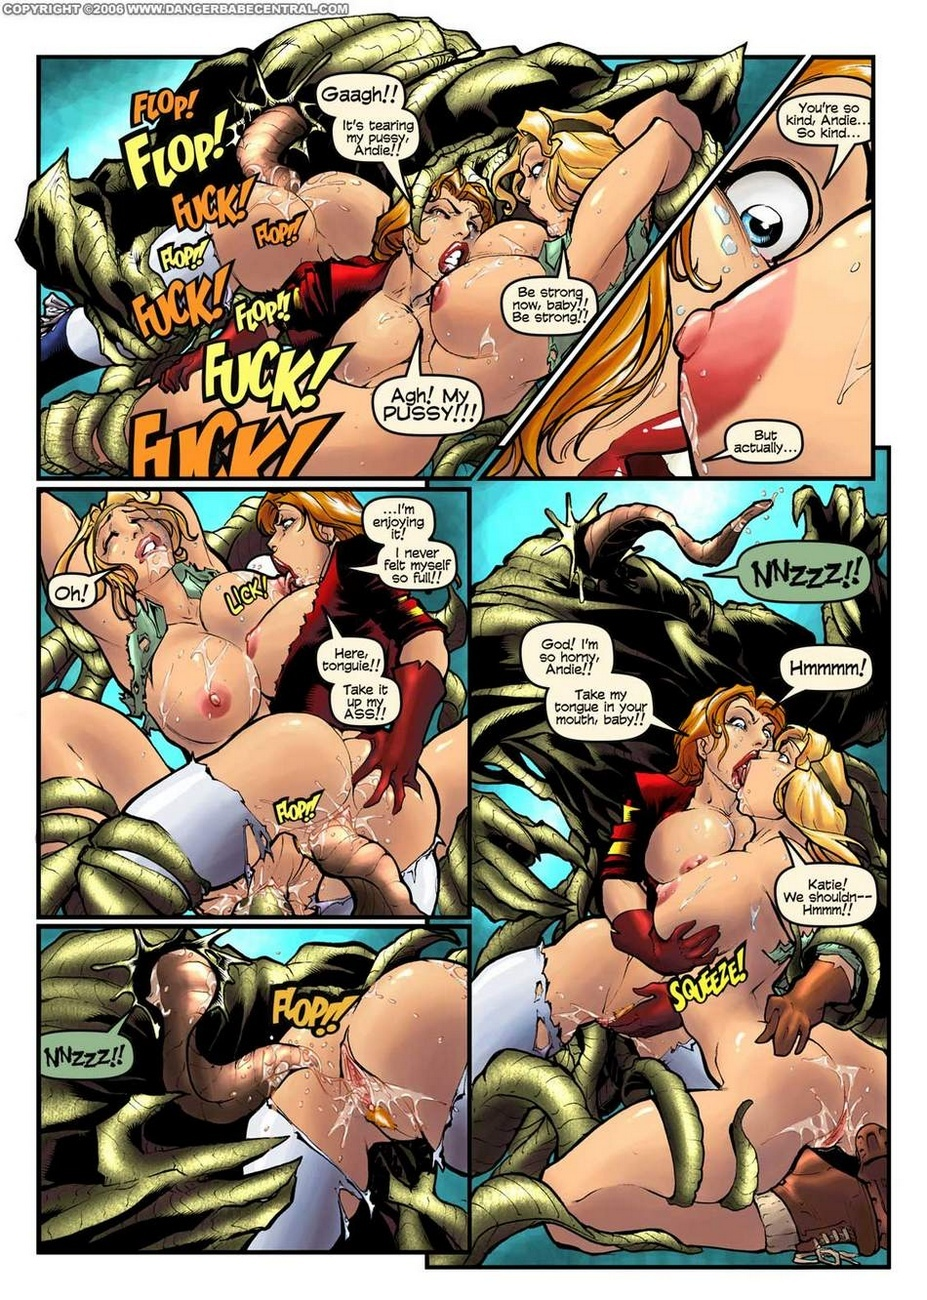 Sexy Seekers 1 - A Warm And Slimy Welcome 9 free sex comic